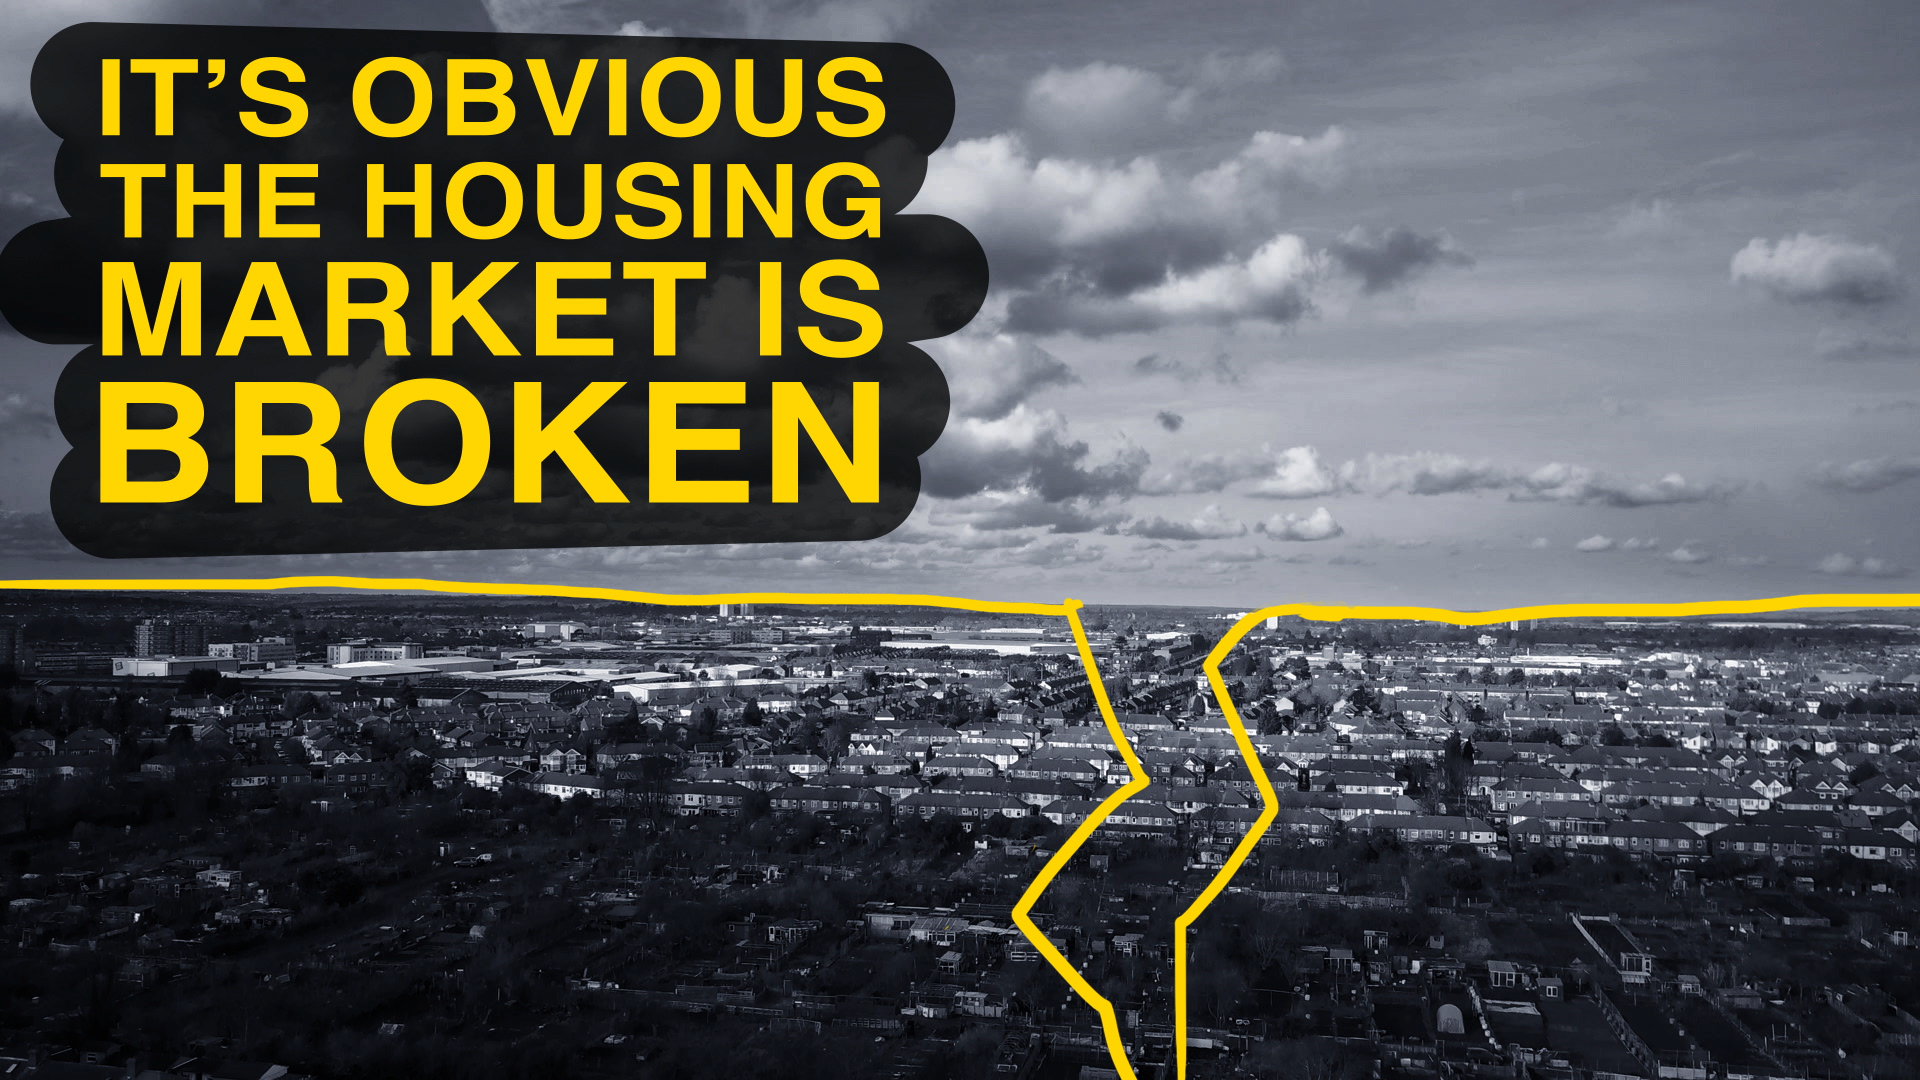 New G15 film asks politicians to properly fund affordable homes